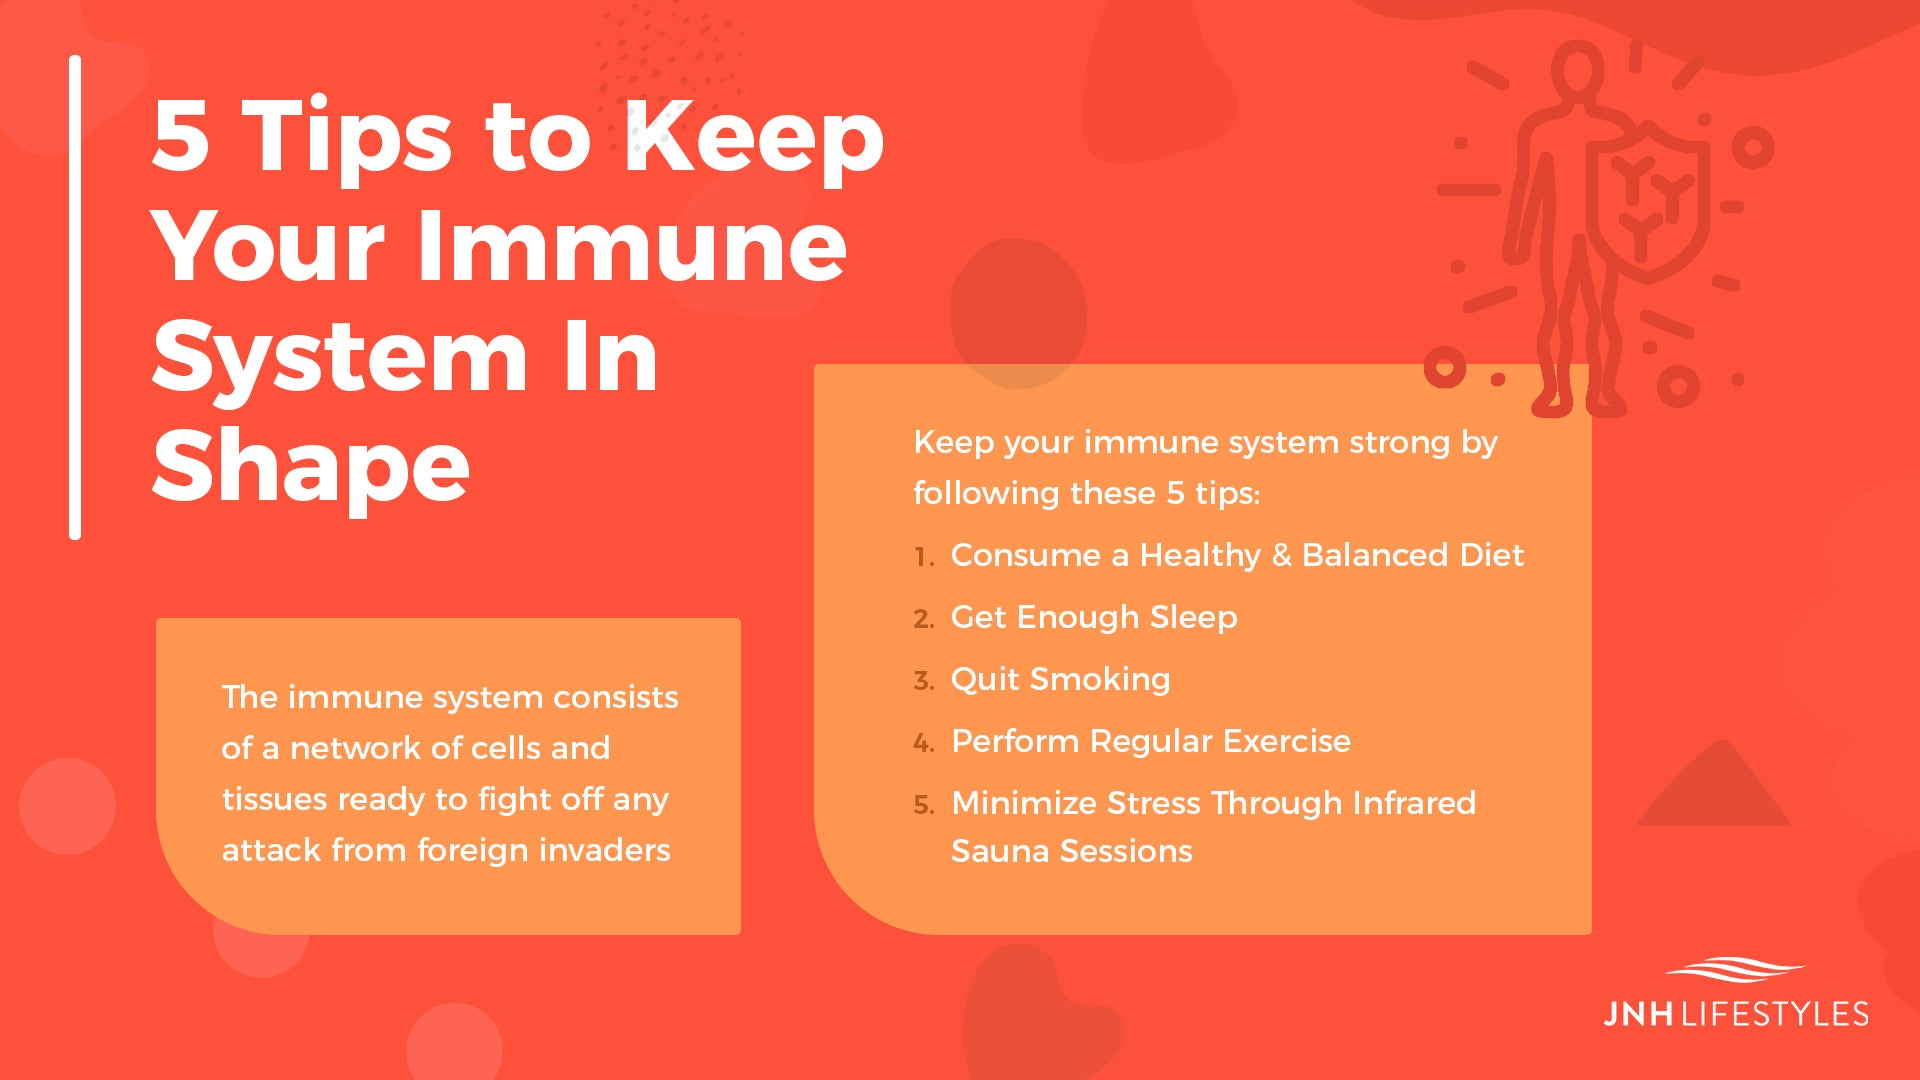 5 Tips to Keep Your Immune System In Shape -The immune system consists of a network of cells and tissues ready to fight off any attack from foreign invaders -Keep your immune system strong by following these 5 tips: 1. Consume a Healthy & Balanced Diet 2. Get Enough Sleep 3. Quit Smoking 4. Perform Regular Exercise 5. Minimize Stress Through Infrared Sauna Sessions